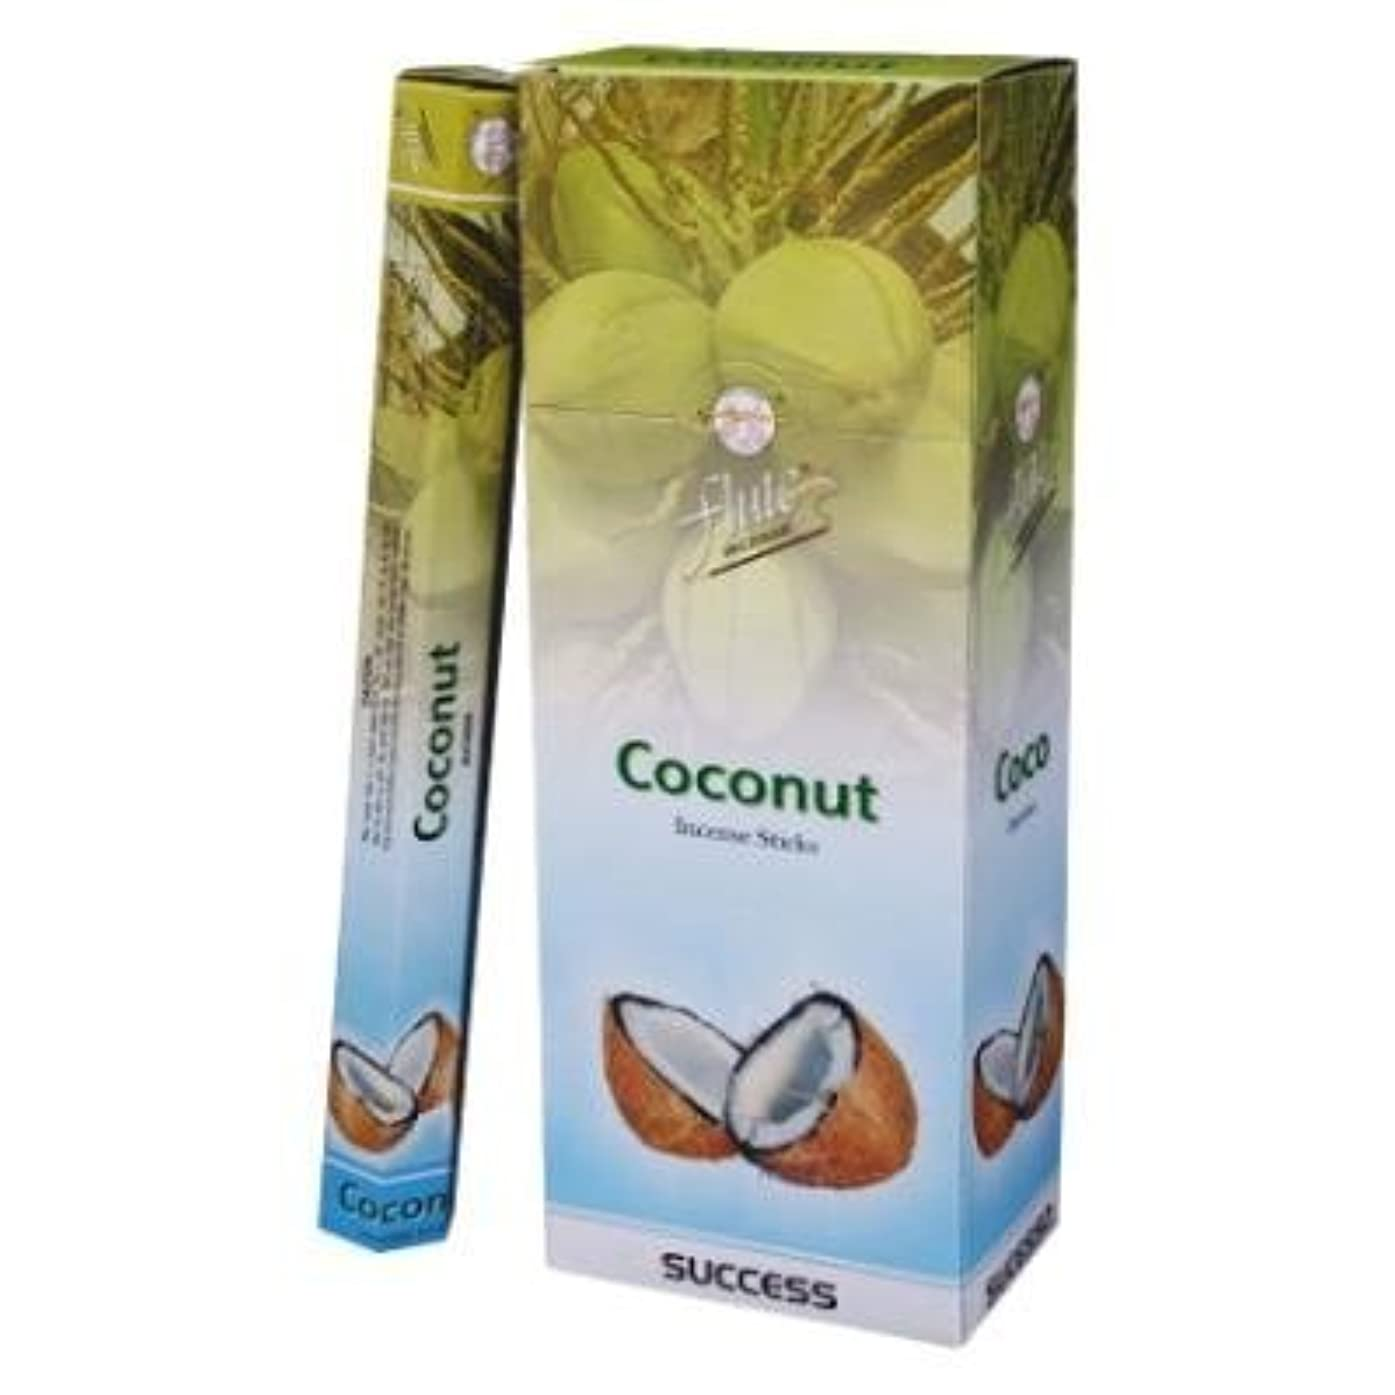 クールレベルウイルスFlute Coconut Hex Incense Sticks - 20 Sticks(Single Pack) by Flute Incense [並行輸入品]